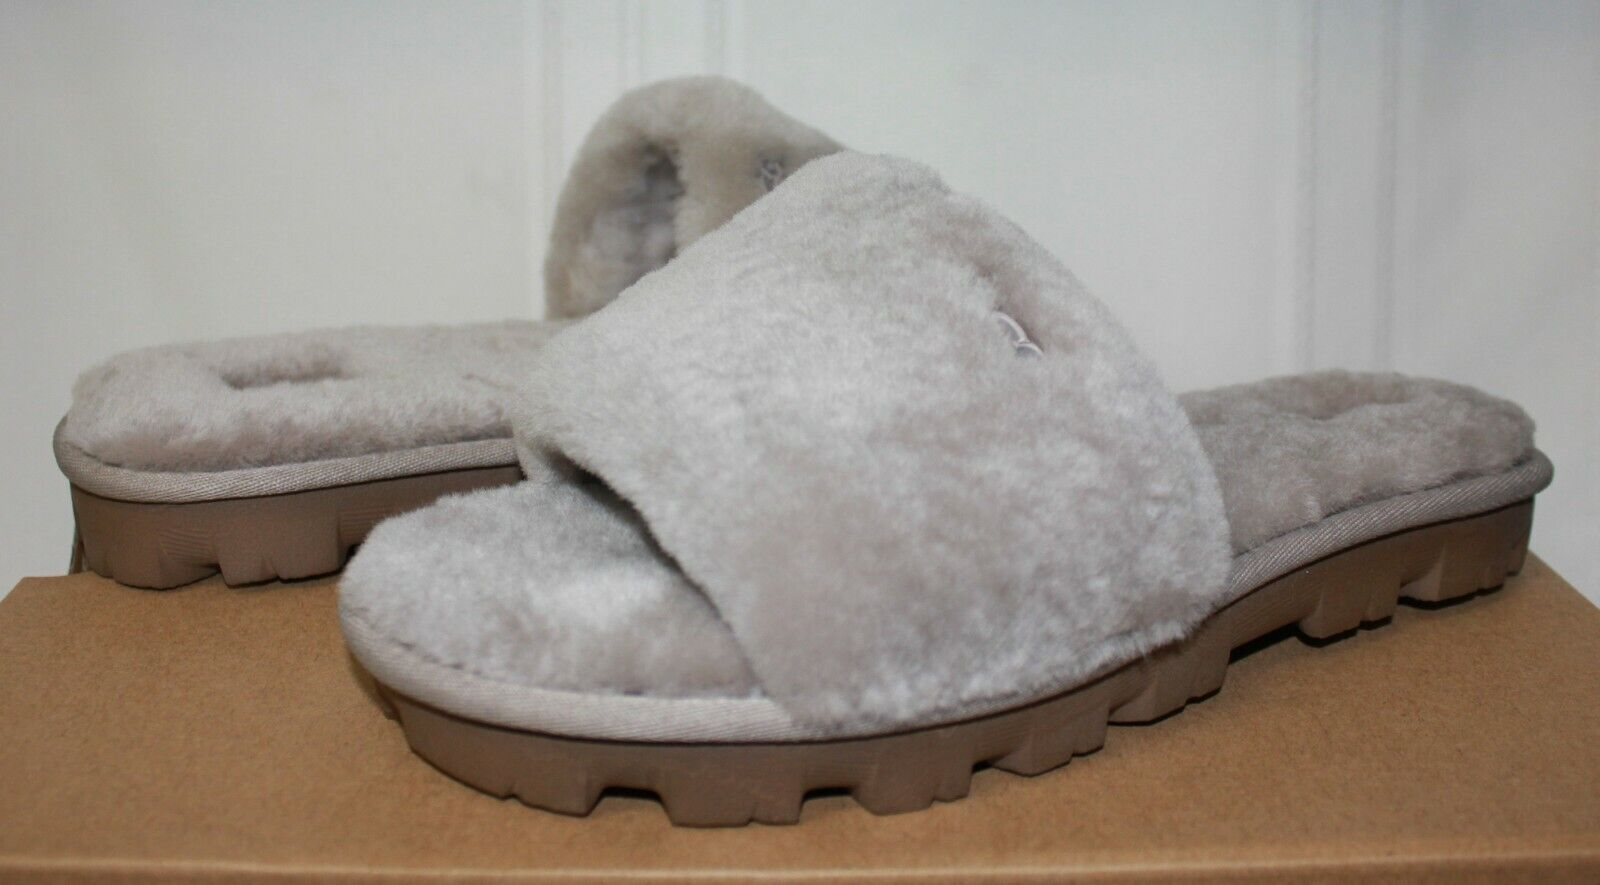 UGG Cozette Oyster Grey Fur slippers New With Box!